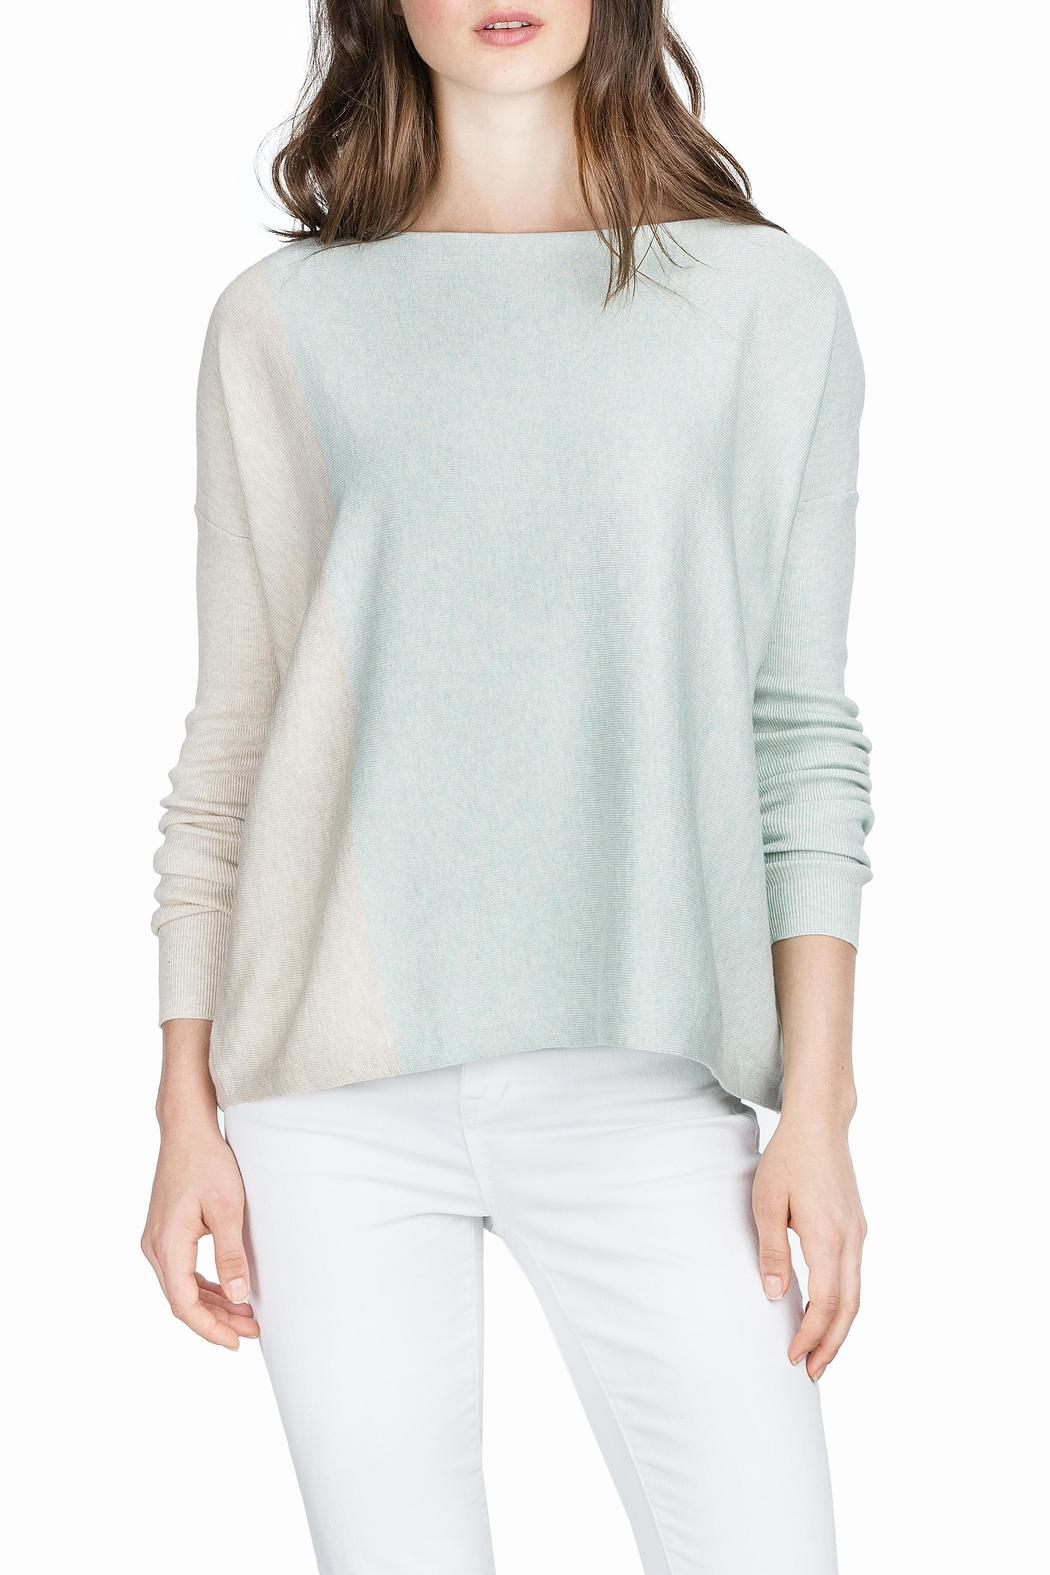 43f90bbafb Lilla P Colorblock Boatneck Sweater from District of Columbia by The ...